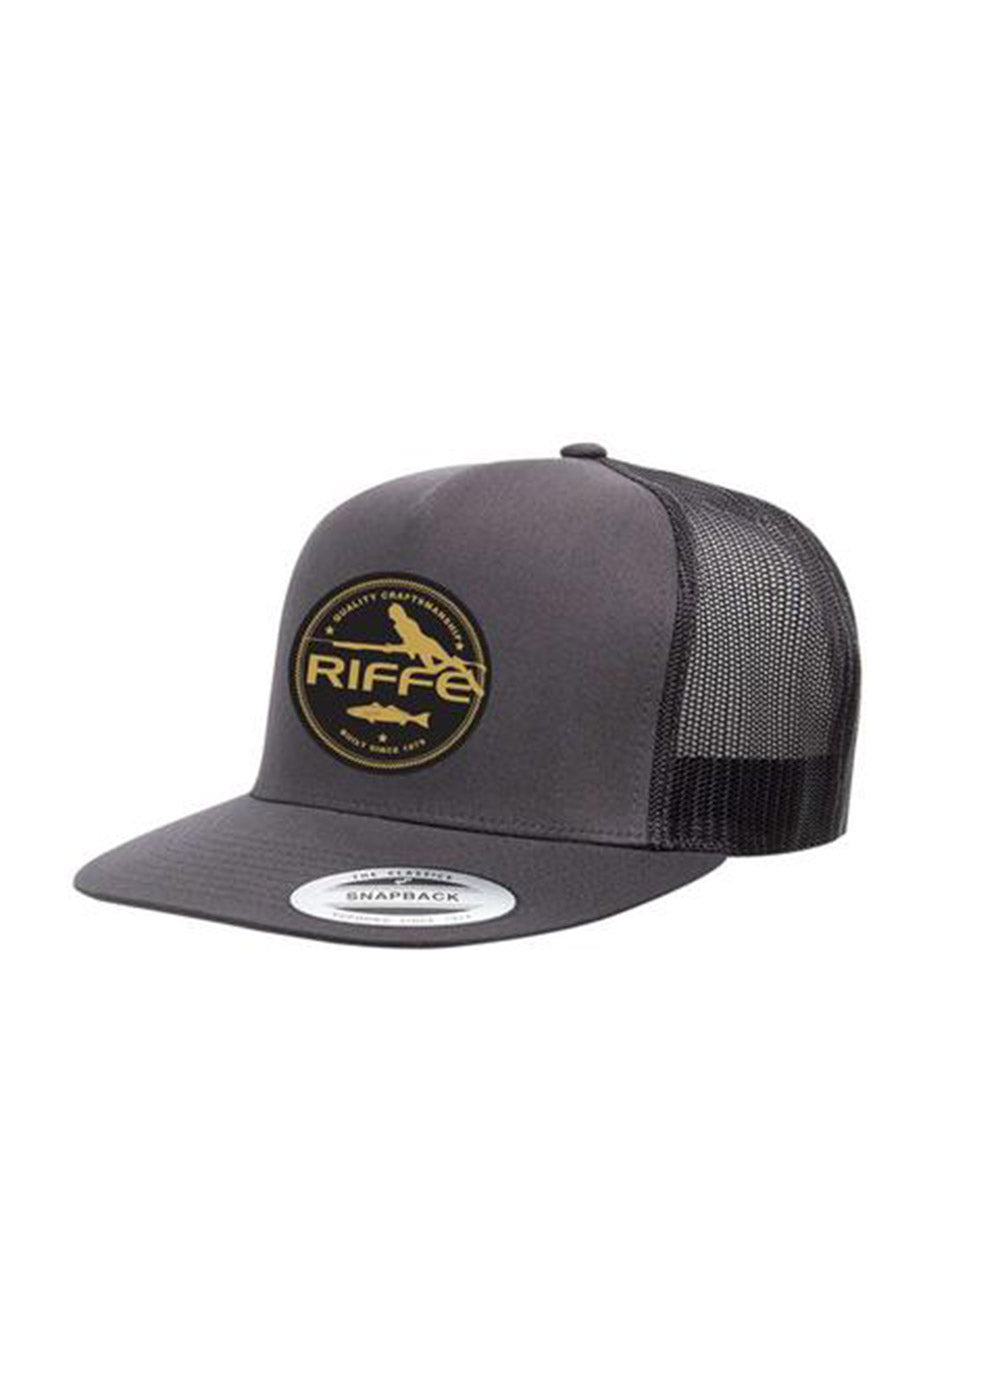 Riffe Quest trucker cap